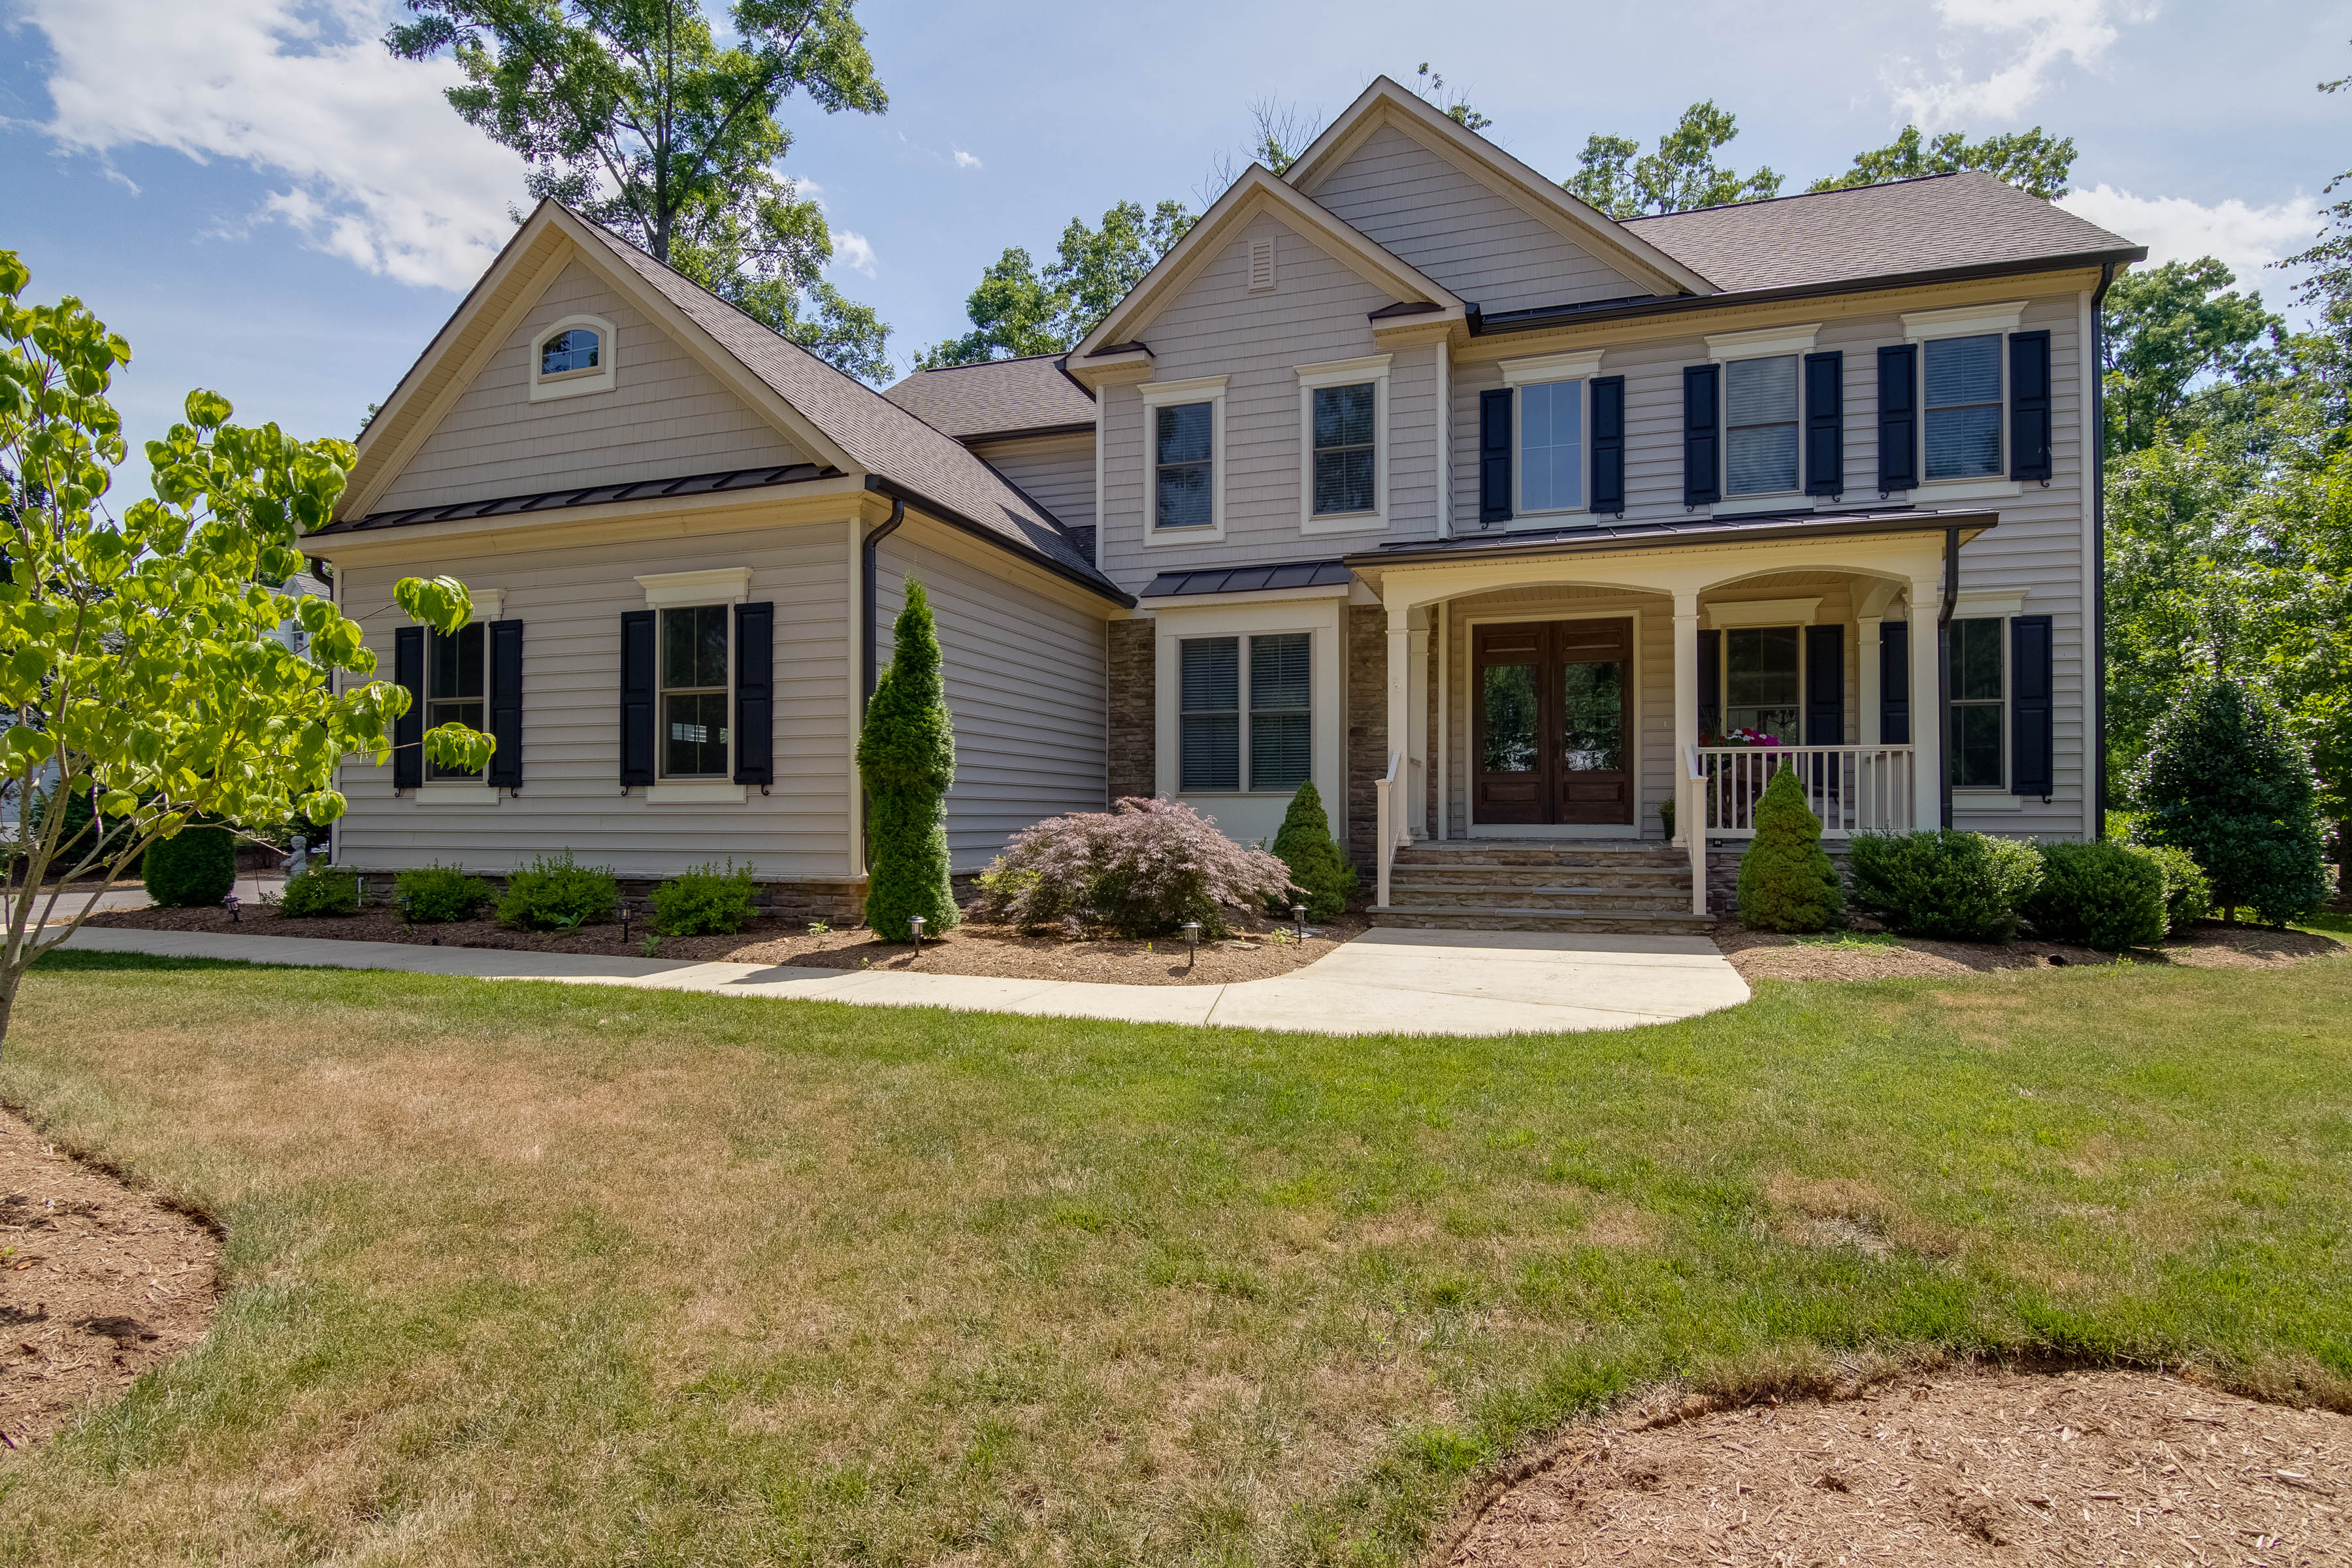 Home of the week custom built colonial fredericksburg today for Custom colonial homes